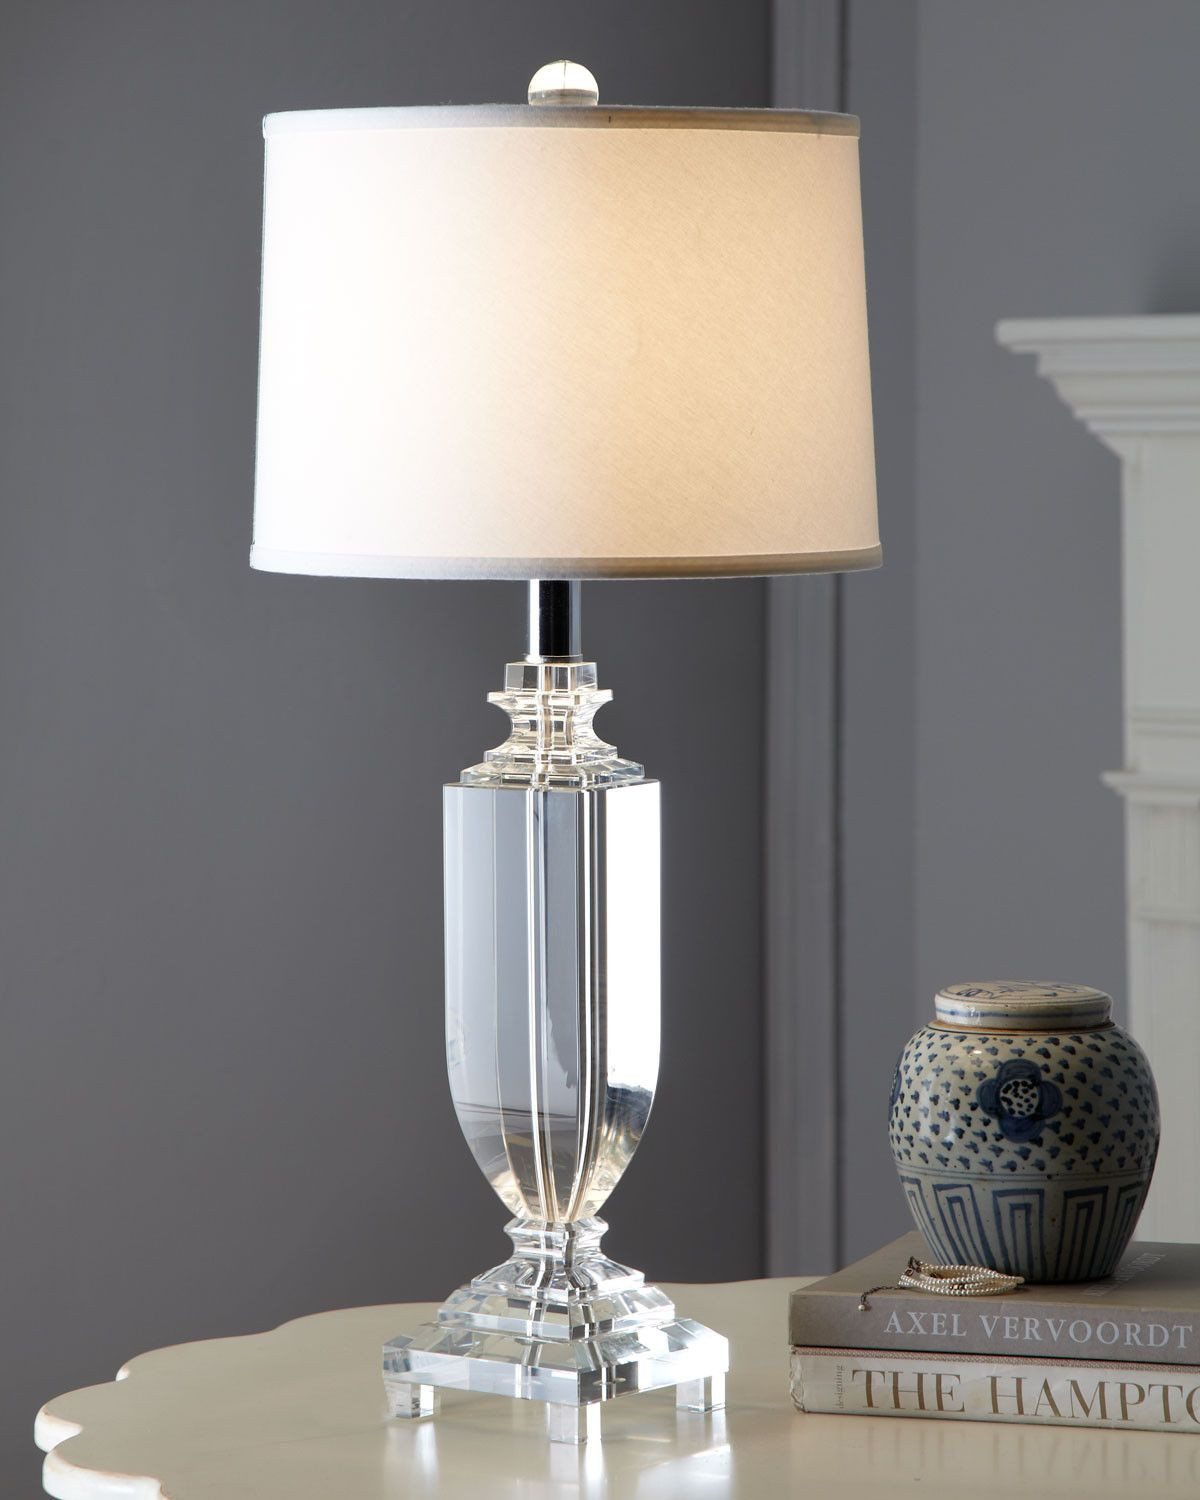 Best ideas about Bedroom Table Lamps . Save or Pin Pin by Tan Han Jie on Lighting Table lamp Now.